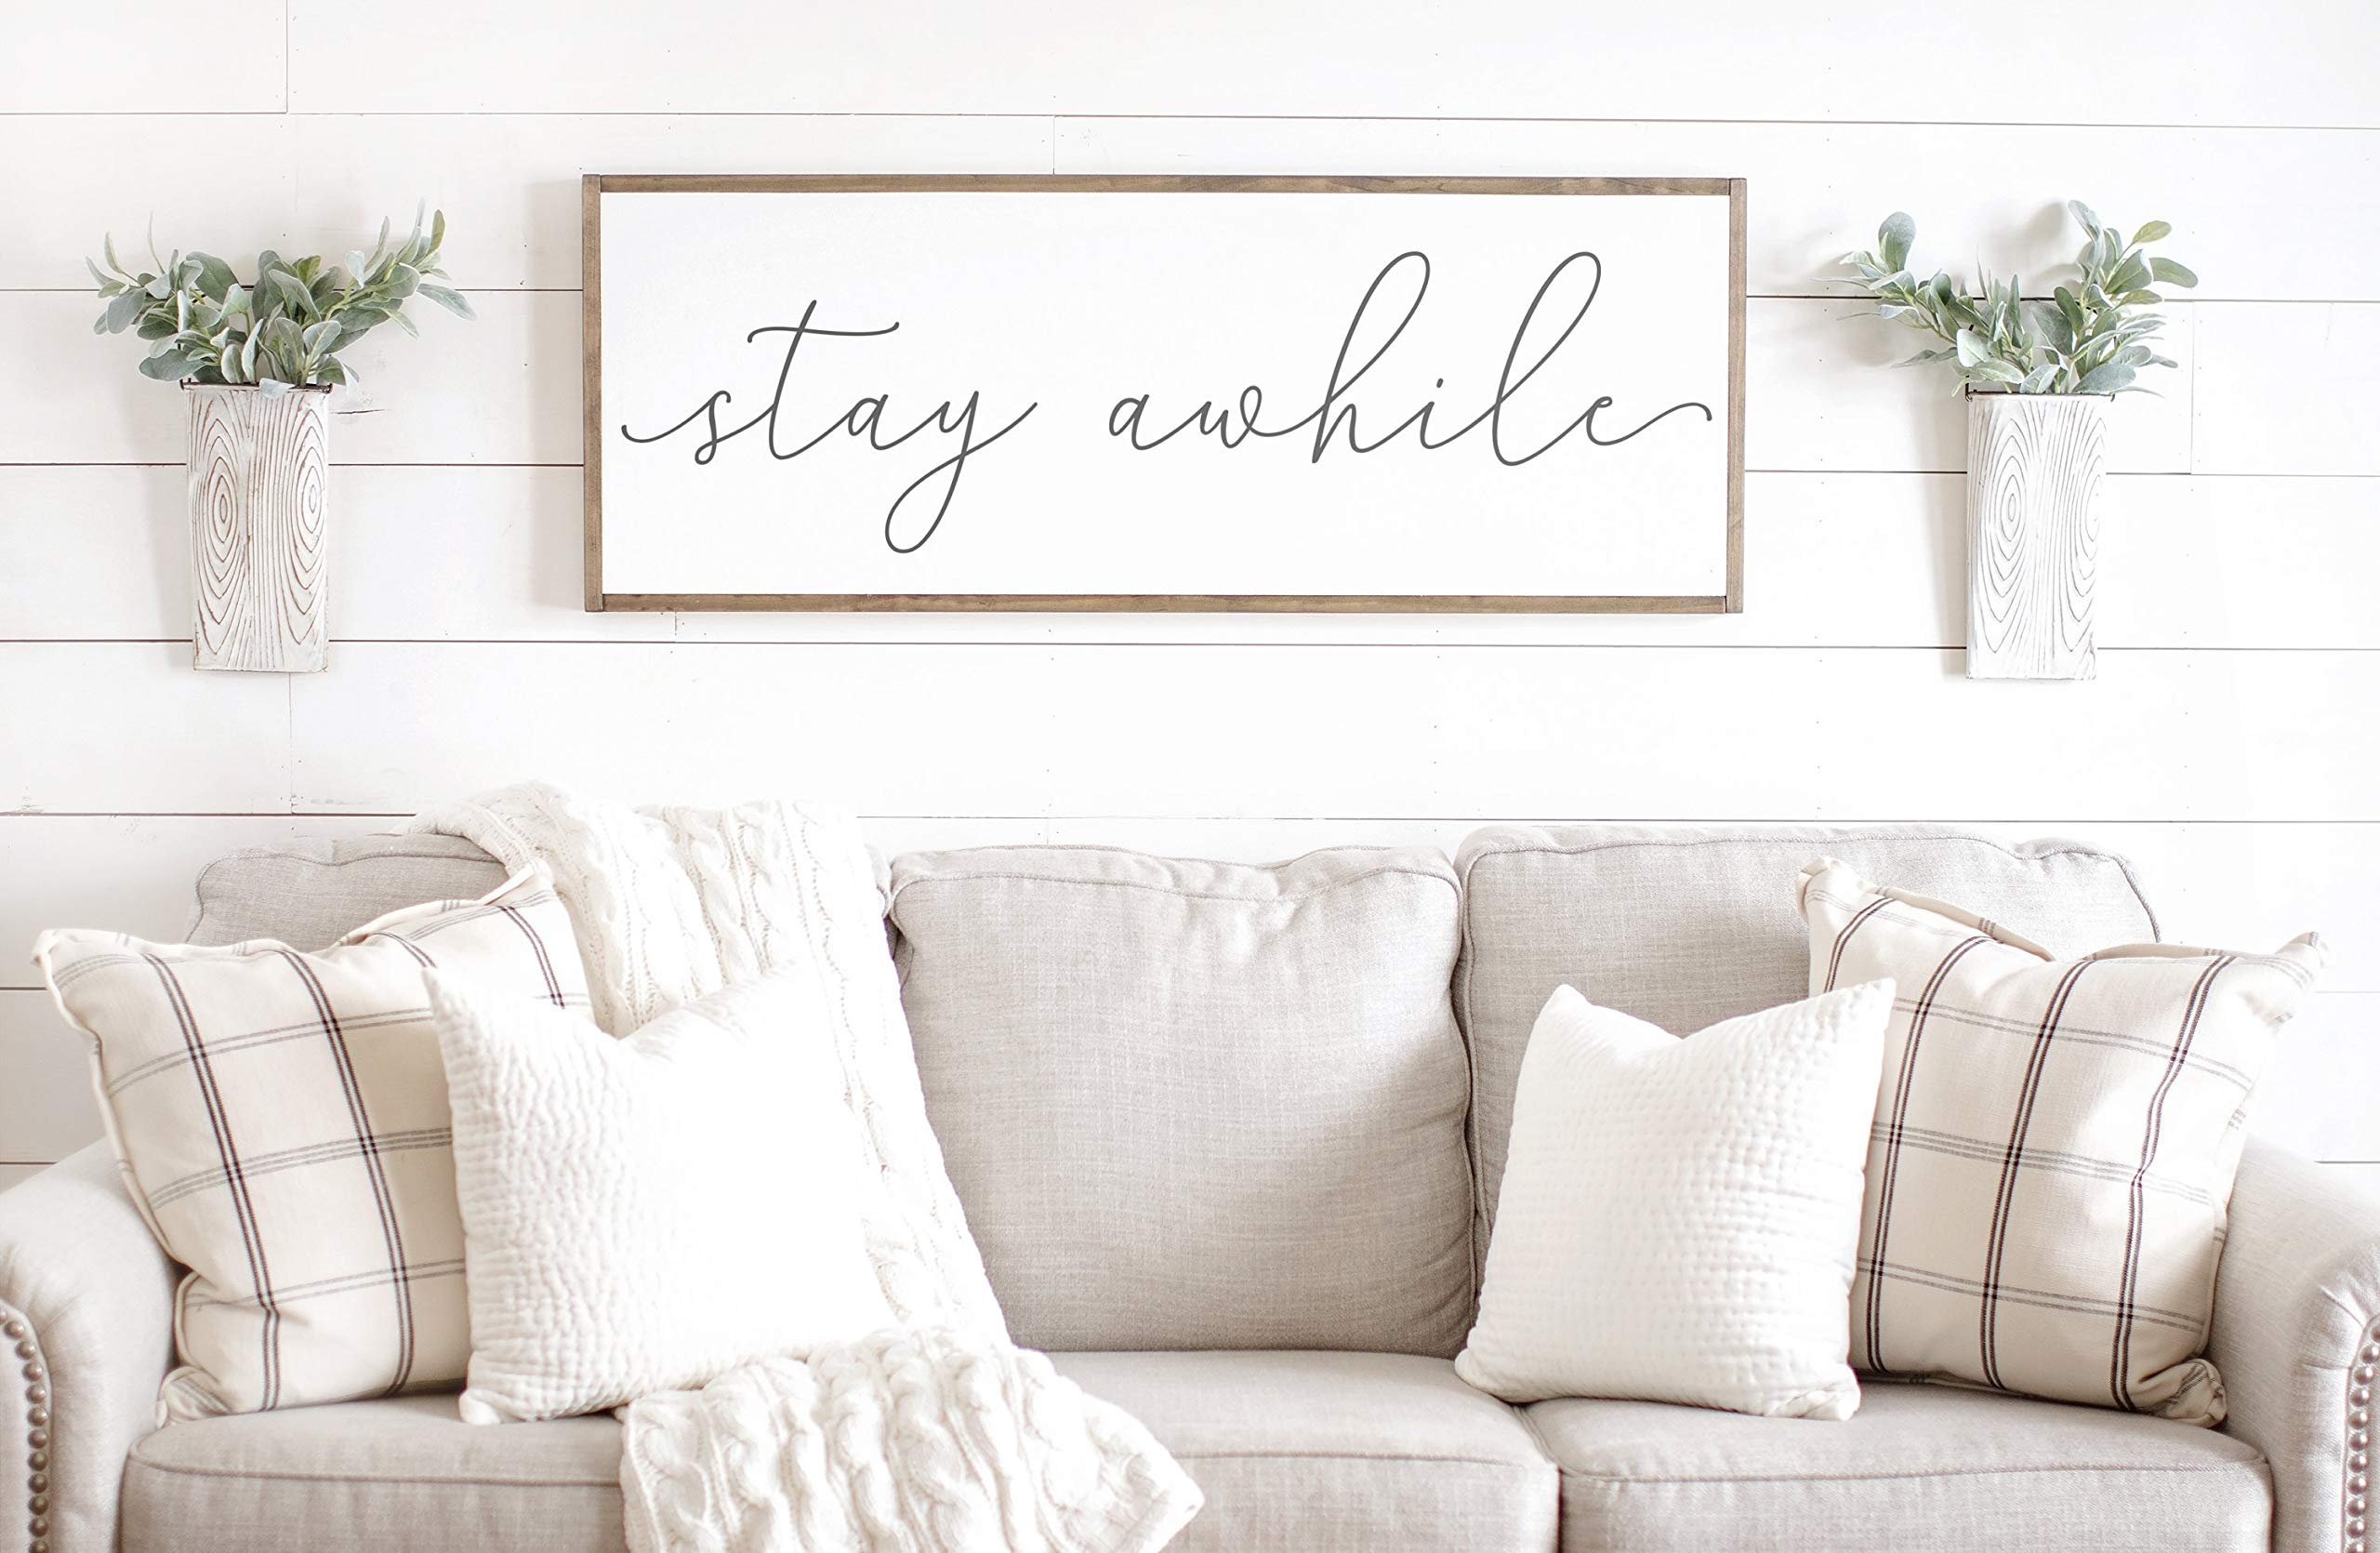 Bruyu5se Framed Wood Sign Rustic Wooden Sign Stay Awhile Sign Stay Awhile Wood Sign Living Room Wall Decor Living Room Signs Sage Green Sign Entryway Wood Sign 6 x 20 Inch Decorative Sign